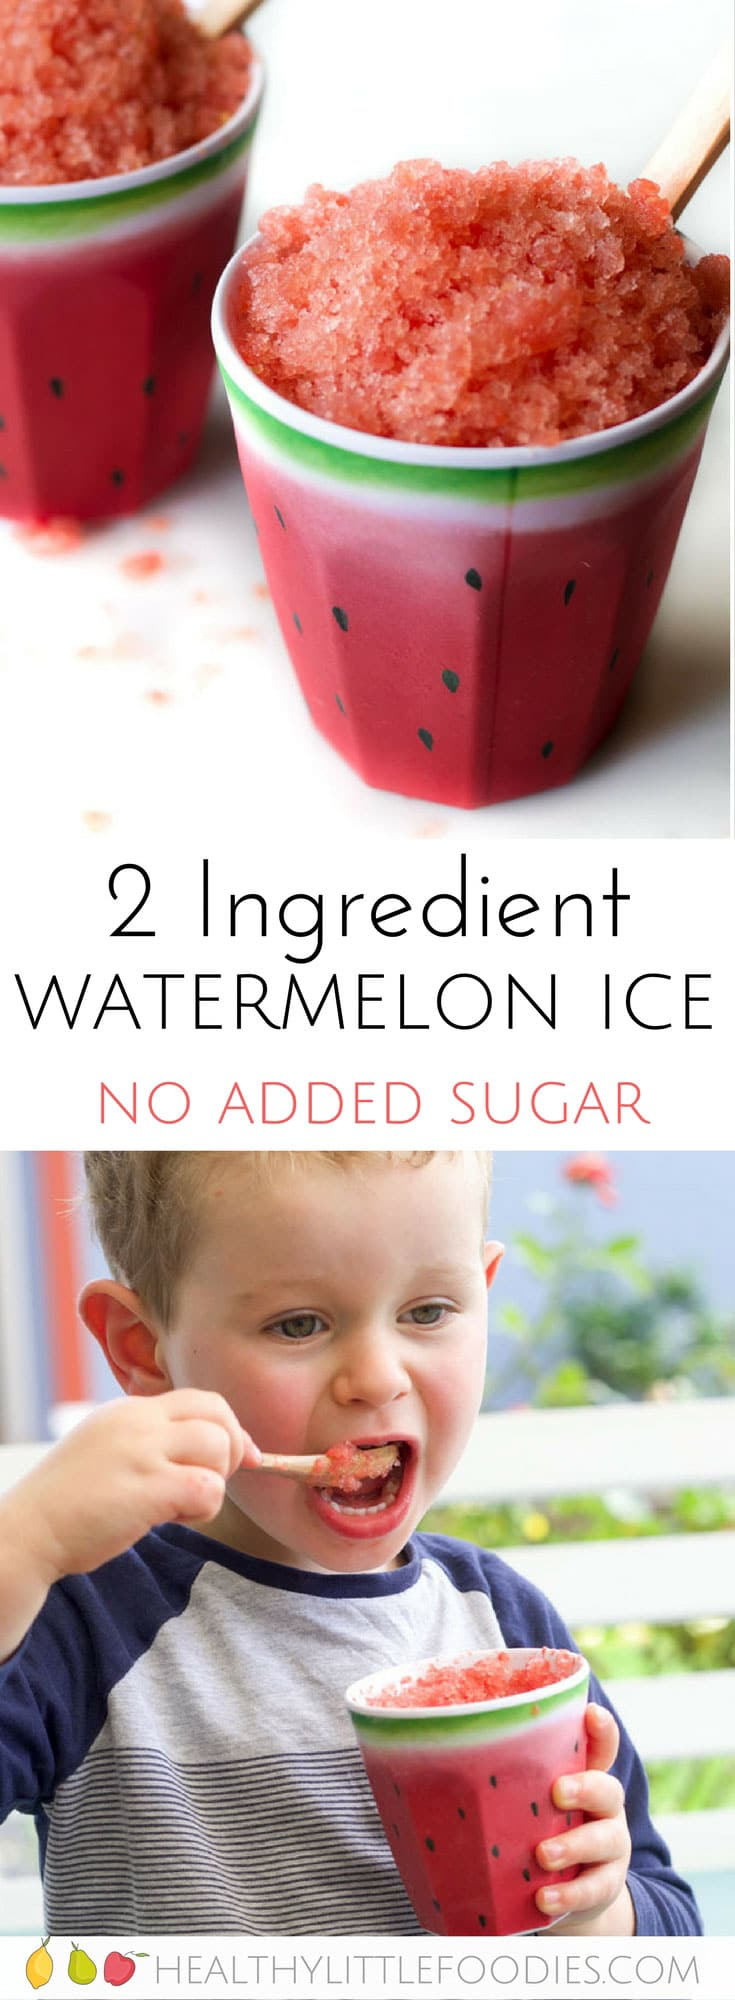 watermelon ice for kids. A healthy 2 ingredient frozen snack. NO added sugar